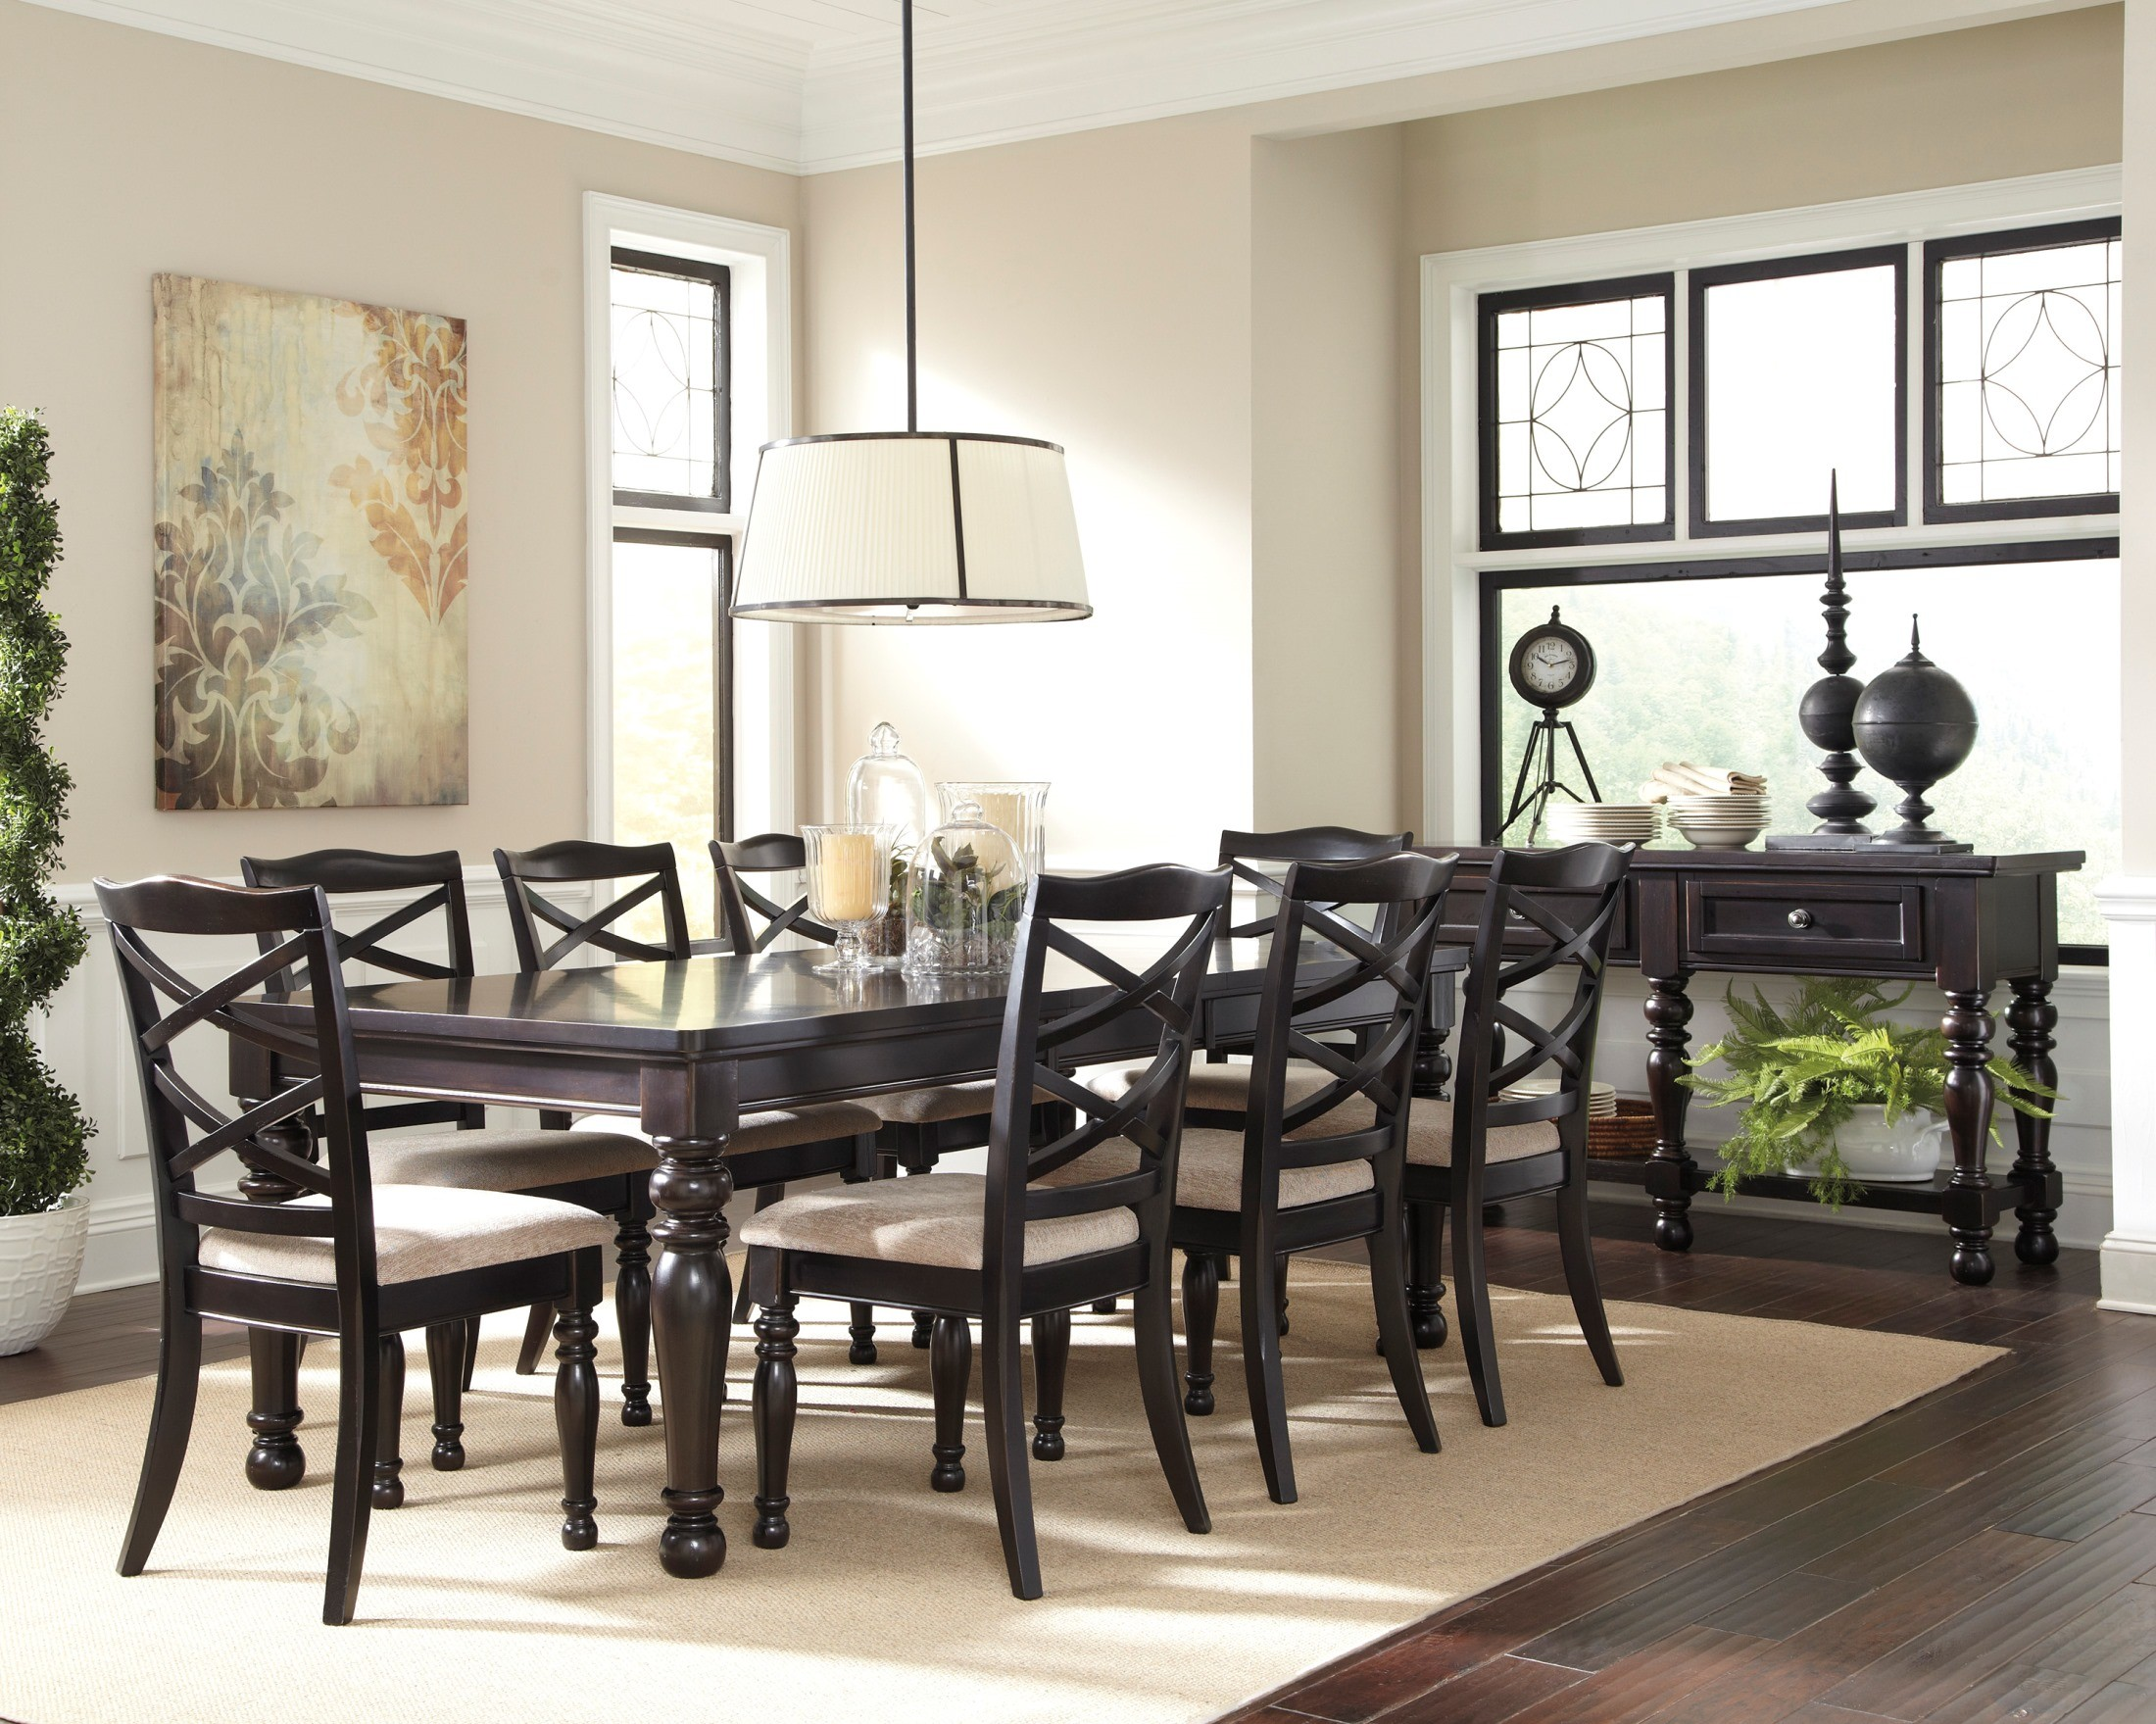 Harlstern Rectangular Extendable Dining Room Set D692 35 Ashley Furniture